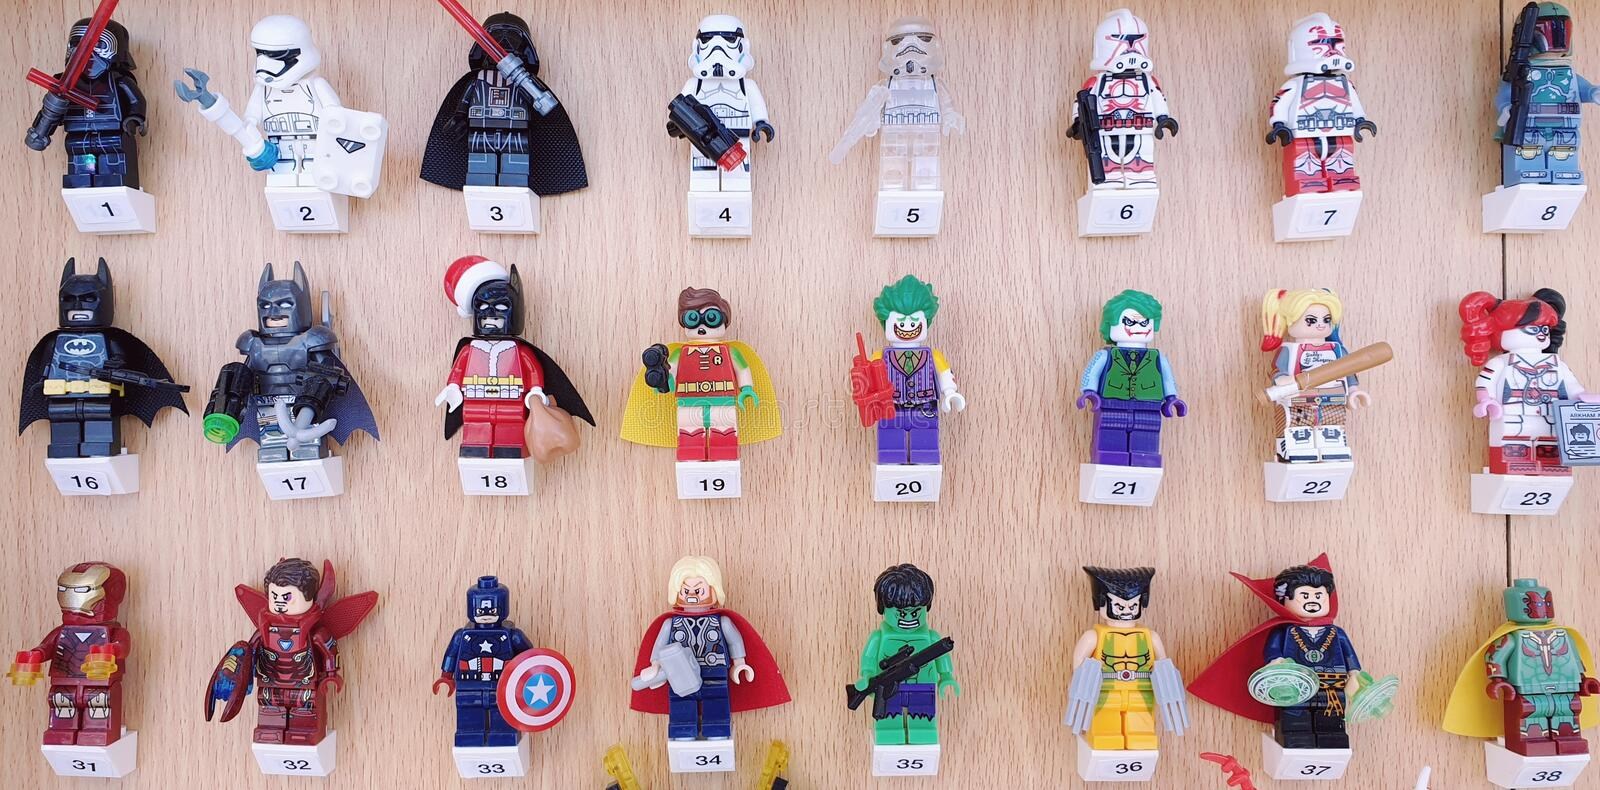 Examples of famous movie Characters in Lego. Examples famous movie characters lego including Thor, Captain America, Iron Man, Hulk, Batman, Joker, Robin, Suicide royalty free stock photography